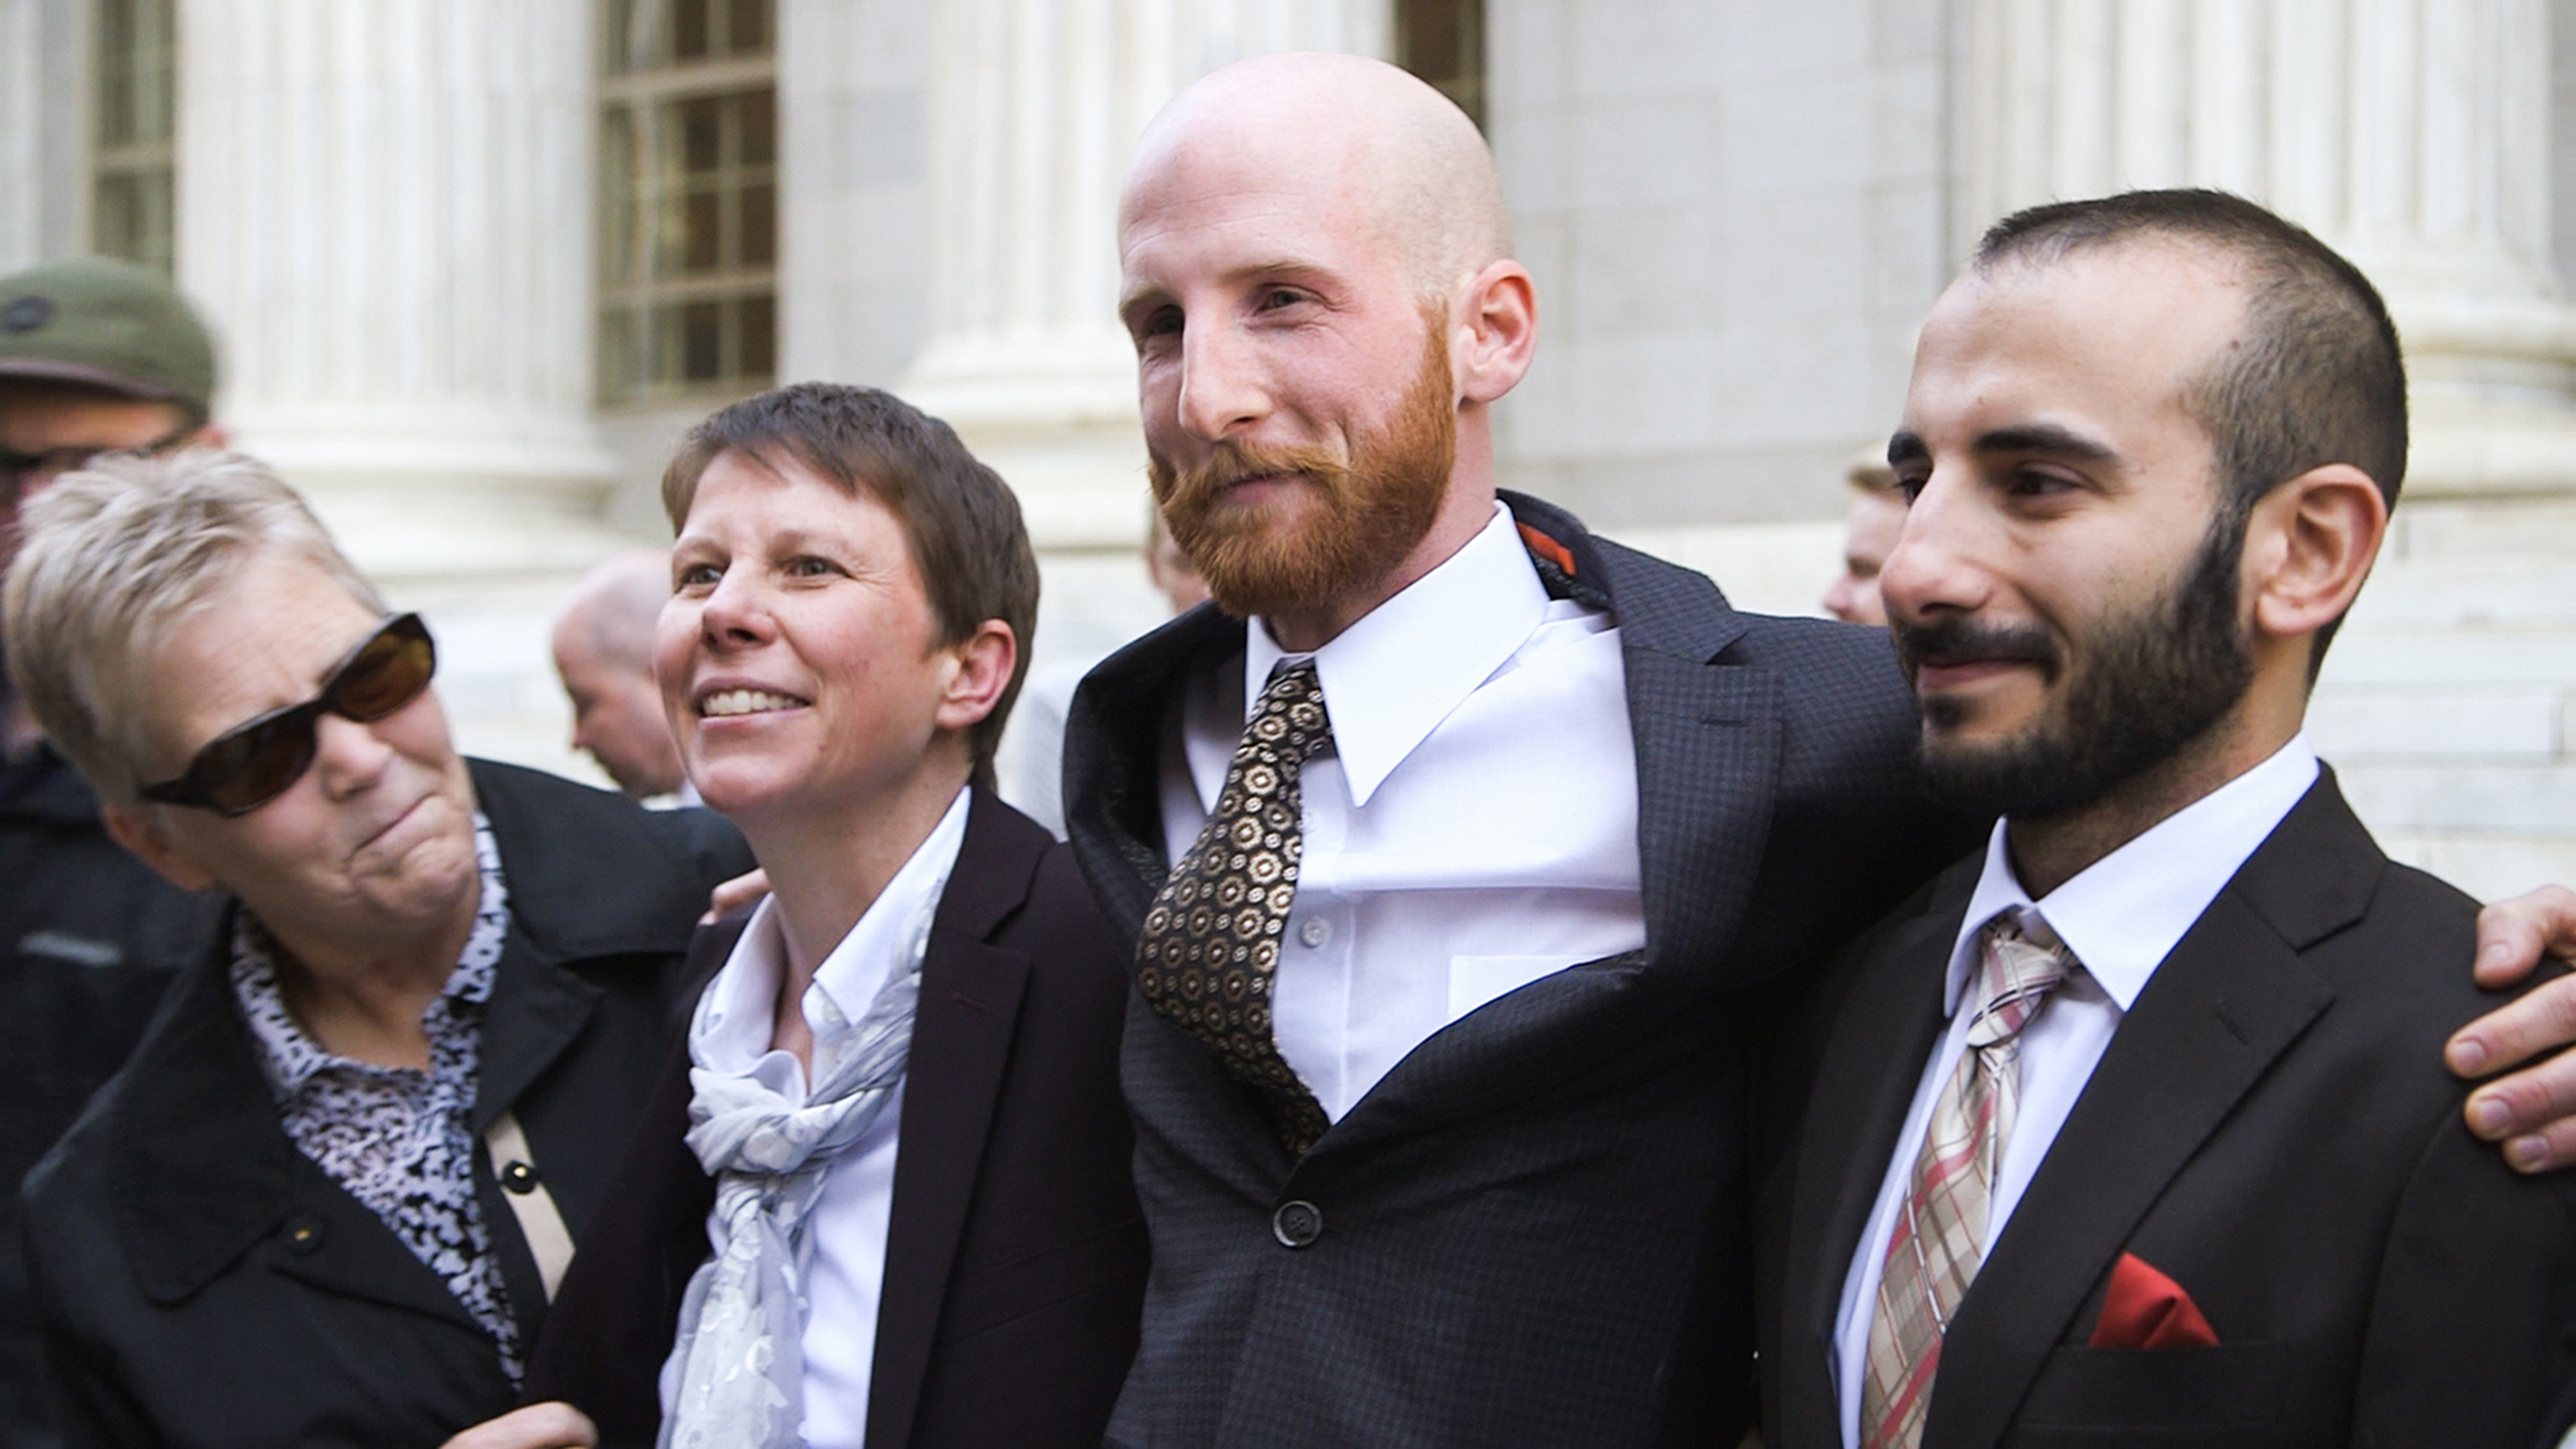 """(Photo courtesy of Blue Fox Entertainment) The plaintiffs in Kitchen v. Herbert, the legal case that made same-sex marriage legal in Utah, gather outside the 10th Circuit Court of Appeals in Denver in 2014, in a scene from the documentary """"Church & State."""" The plaintiffs are (from left): Laurie Wood, Kody Partridge, Derek Kitchen and Moudi Sbeity."""